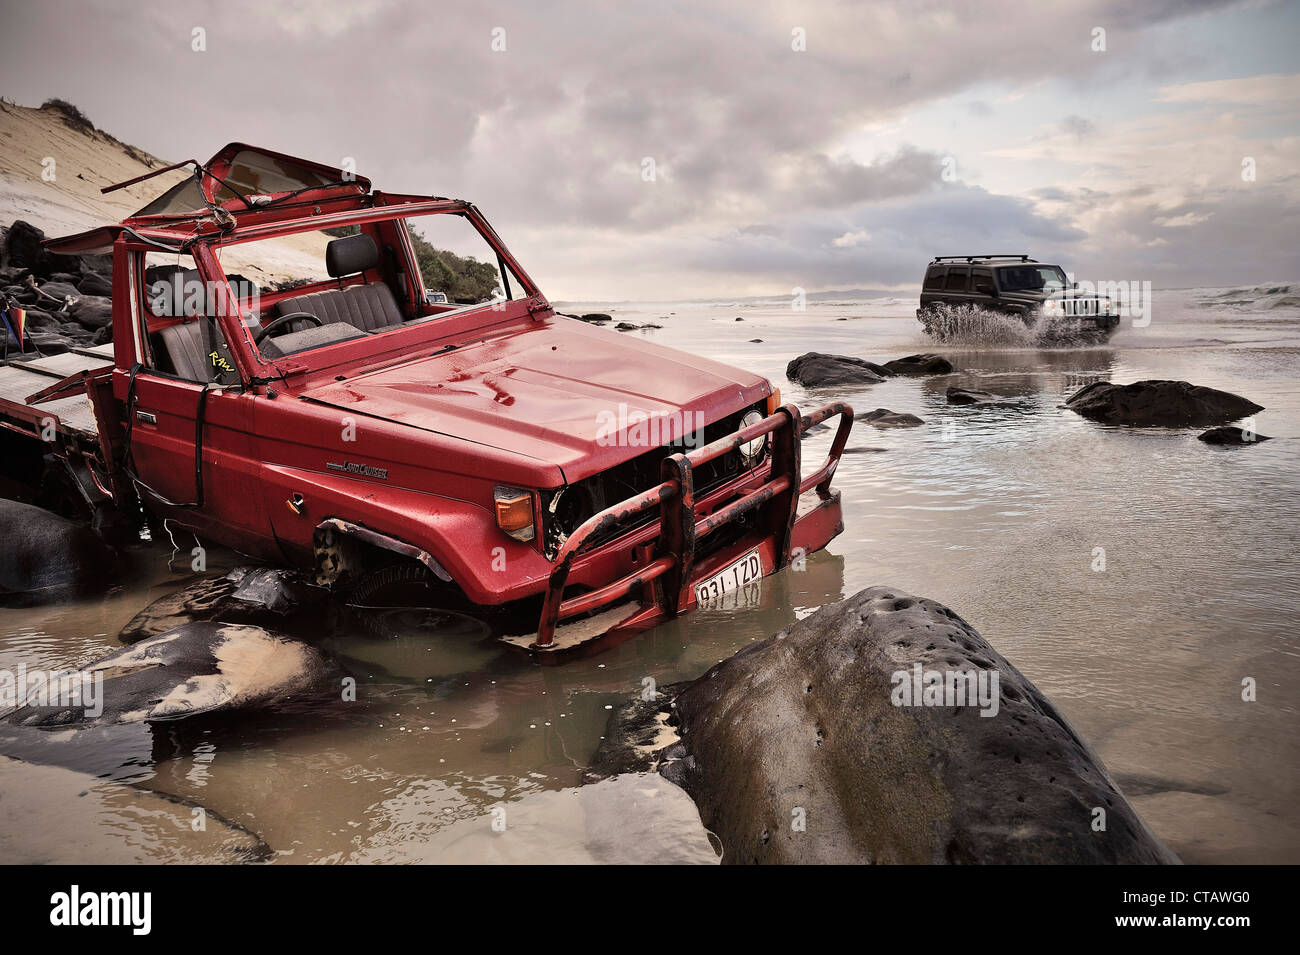 Stranded offroad vehicle at Rainbow Beach, water crossing at high tide, Queensland, Australia - Stock Image